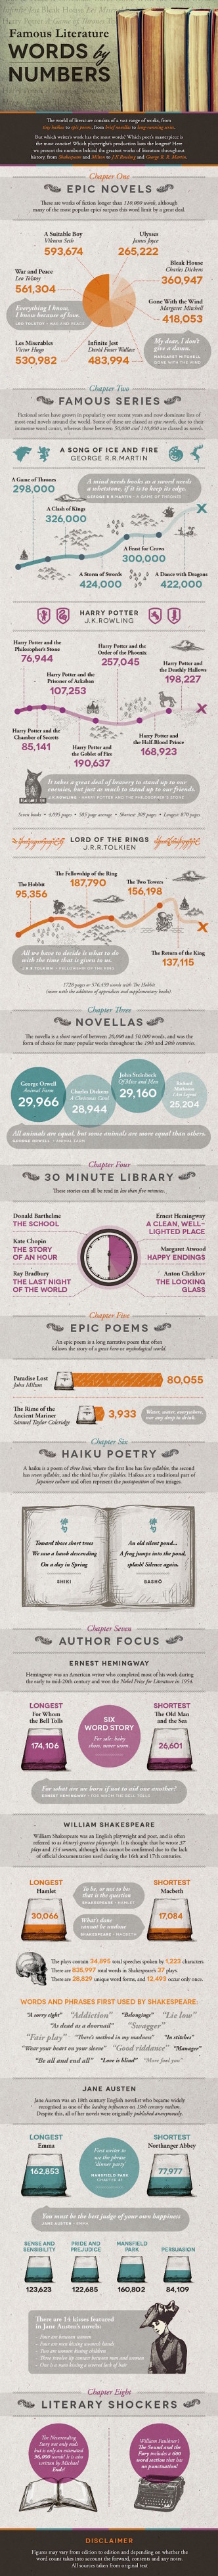 Famous books by the numbers - full size infographic